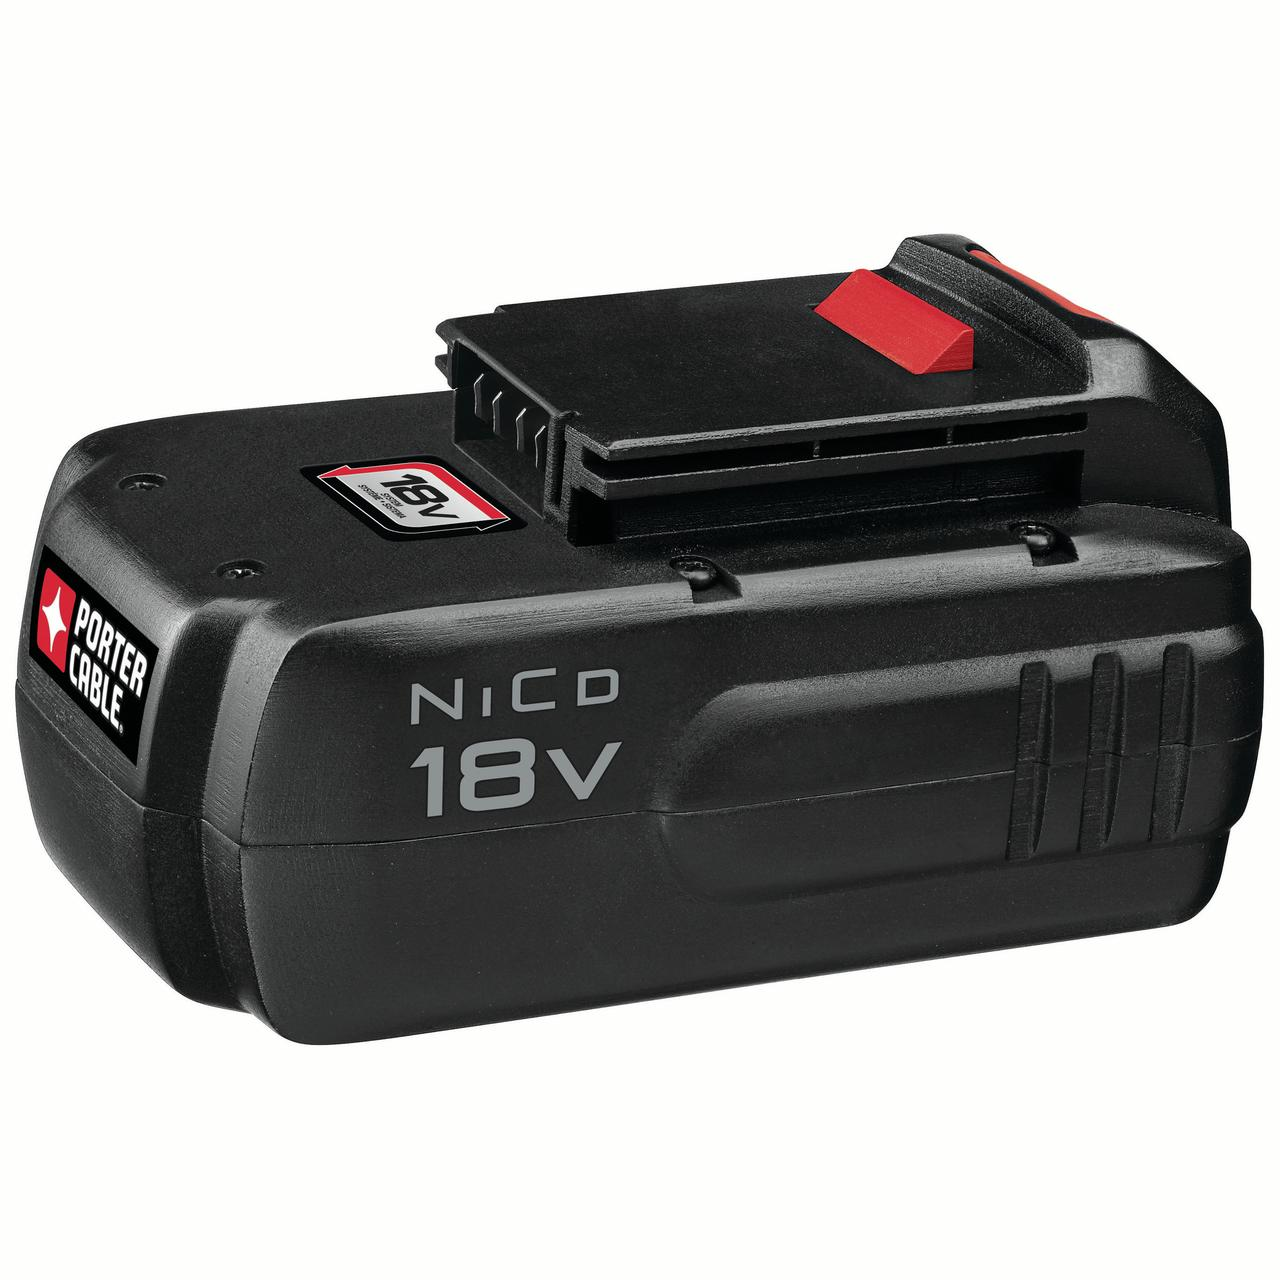 PORTER CABLE PC18B 18V NiCad Battery